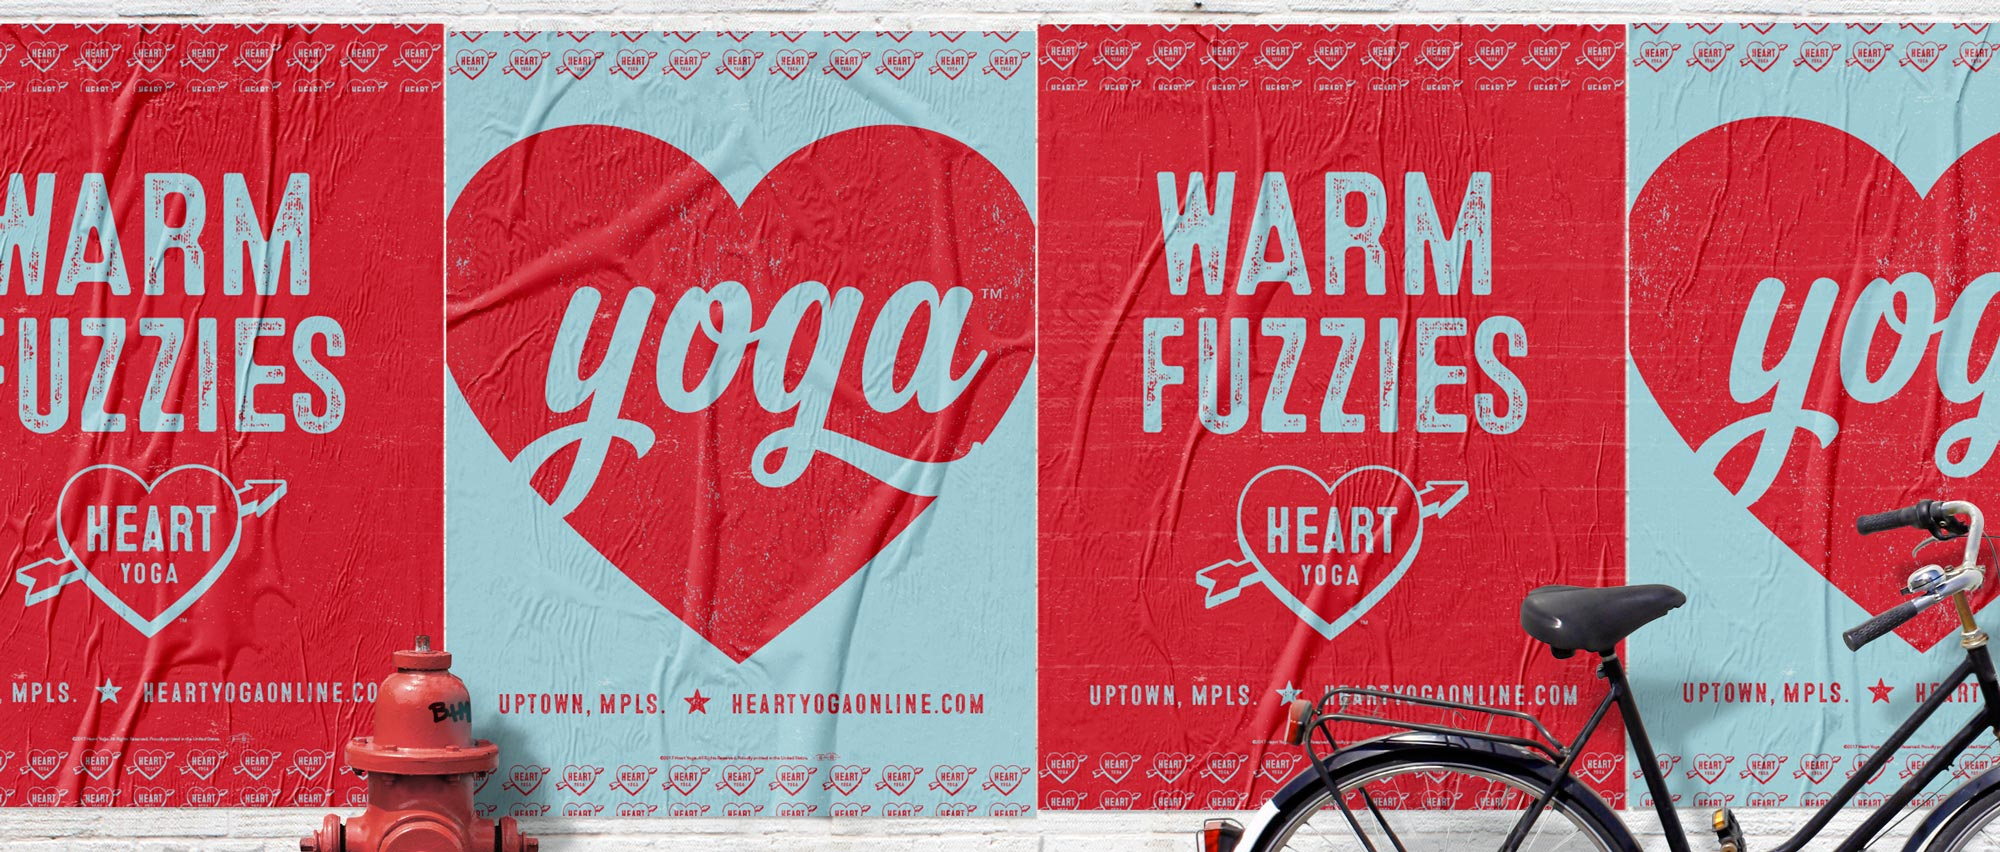 Heart Yoga Uptown Minneapolis